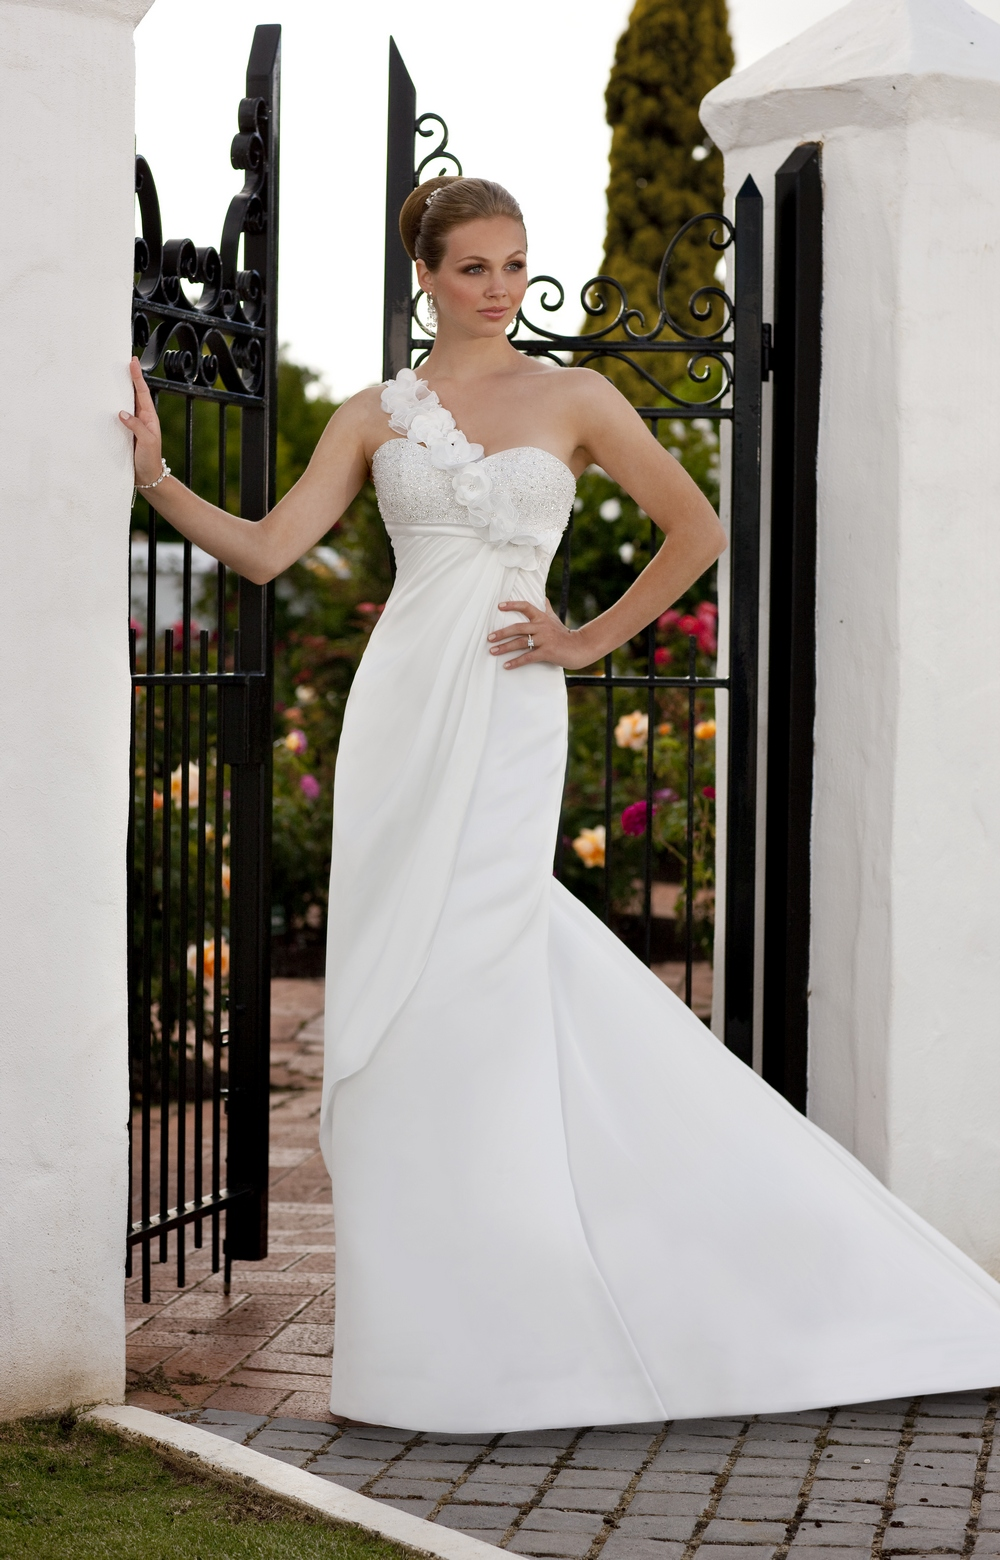 Essense-of-australia-wedding-dresses-2010-2011-d1080-assymetric-strap.original